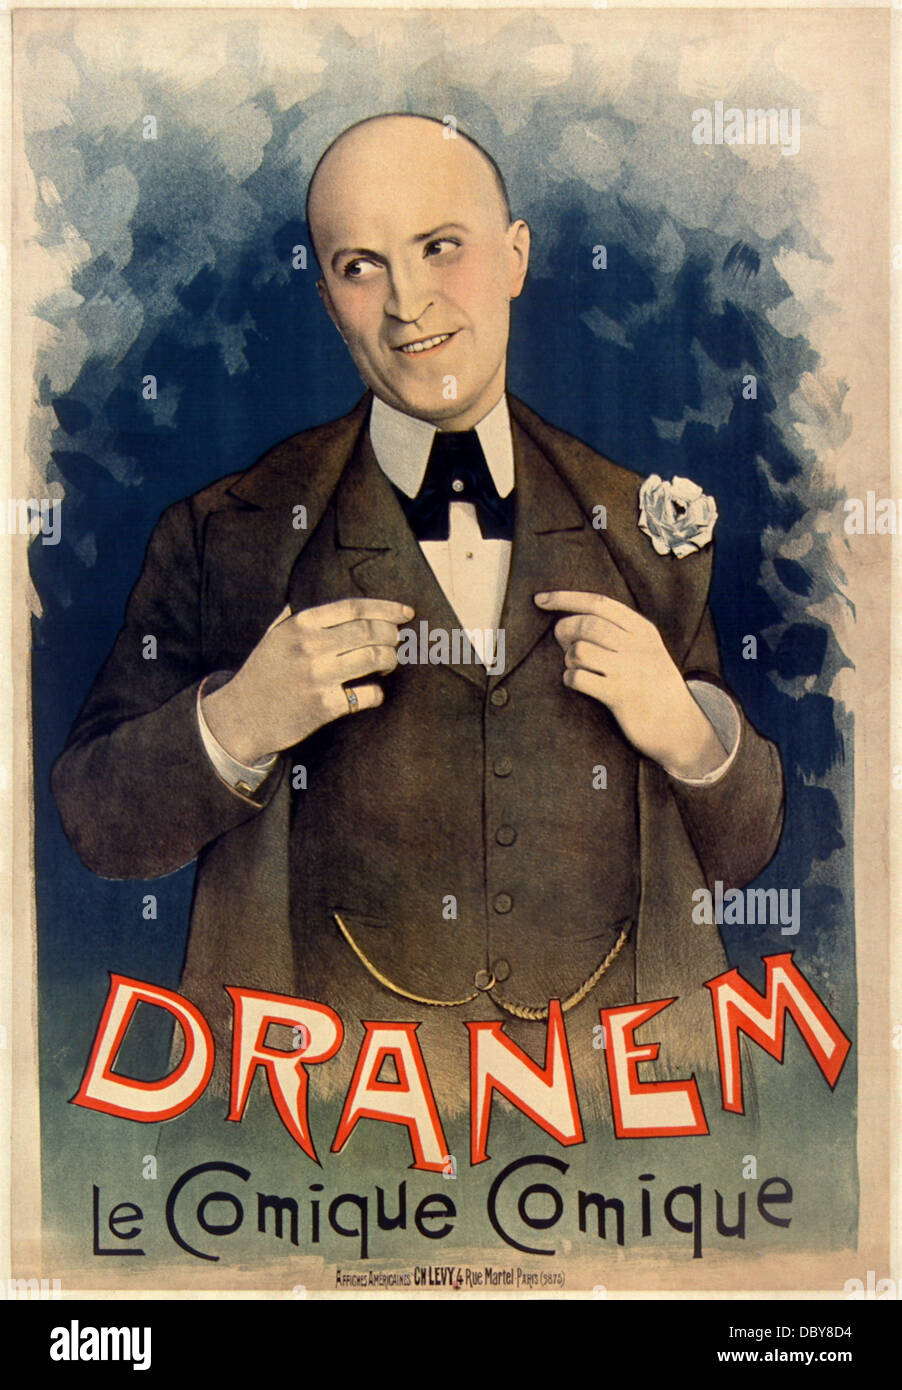 Dranem (Charles Armand Ménard, 1869 - 1935), french comic singer, music hall, stage and film actor. Poster - Stock Image